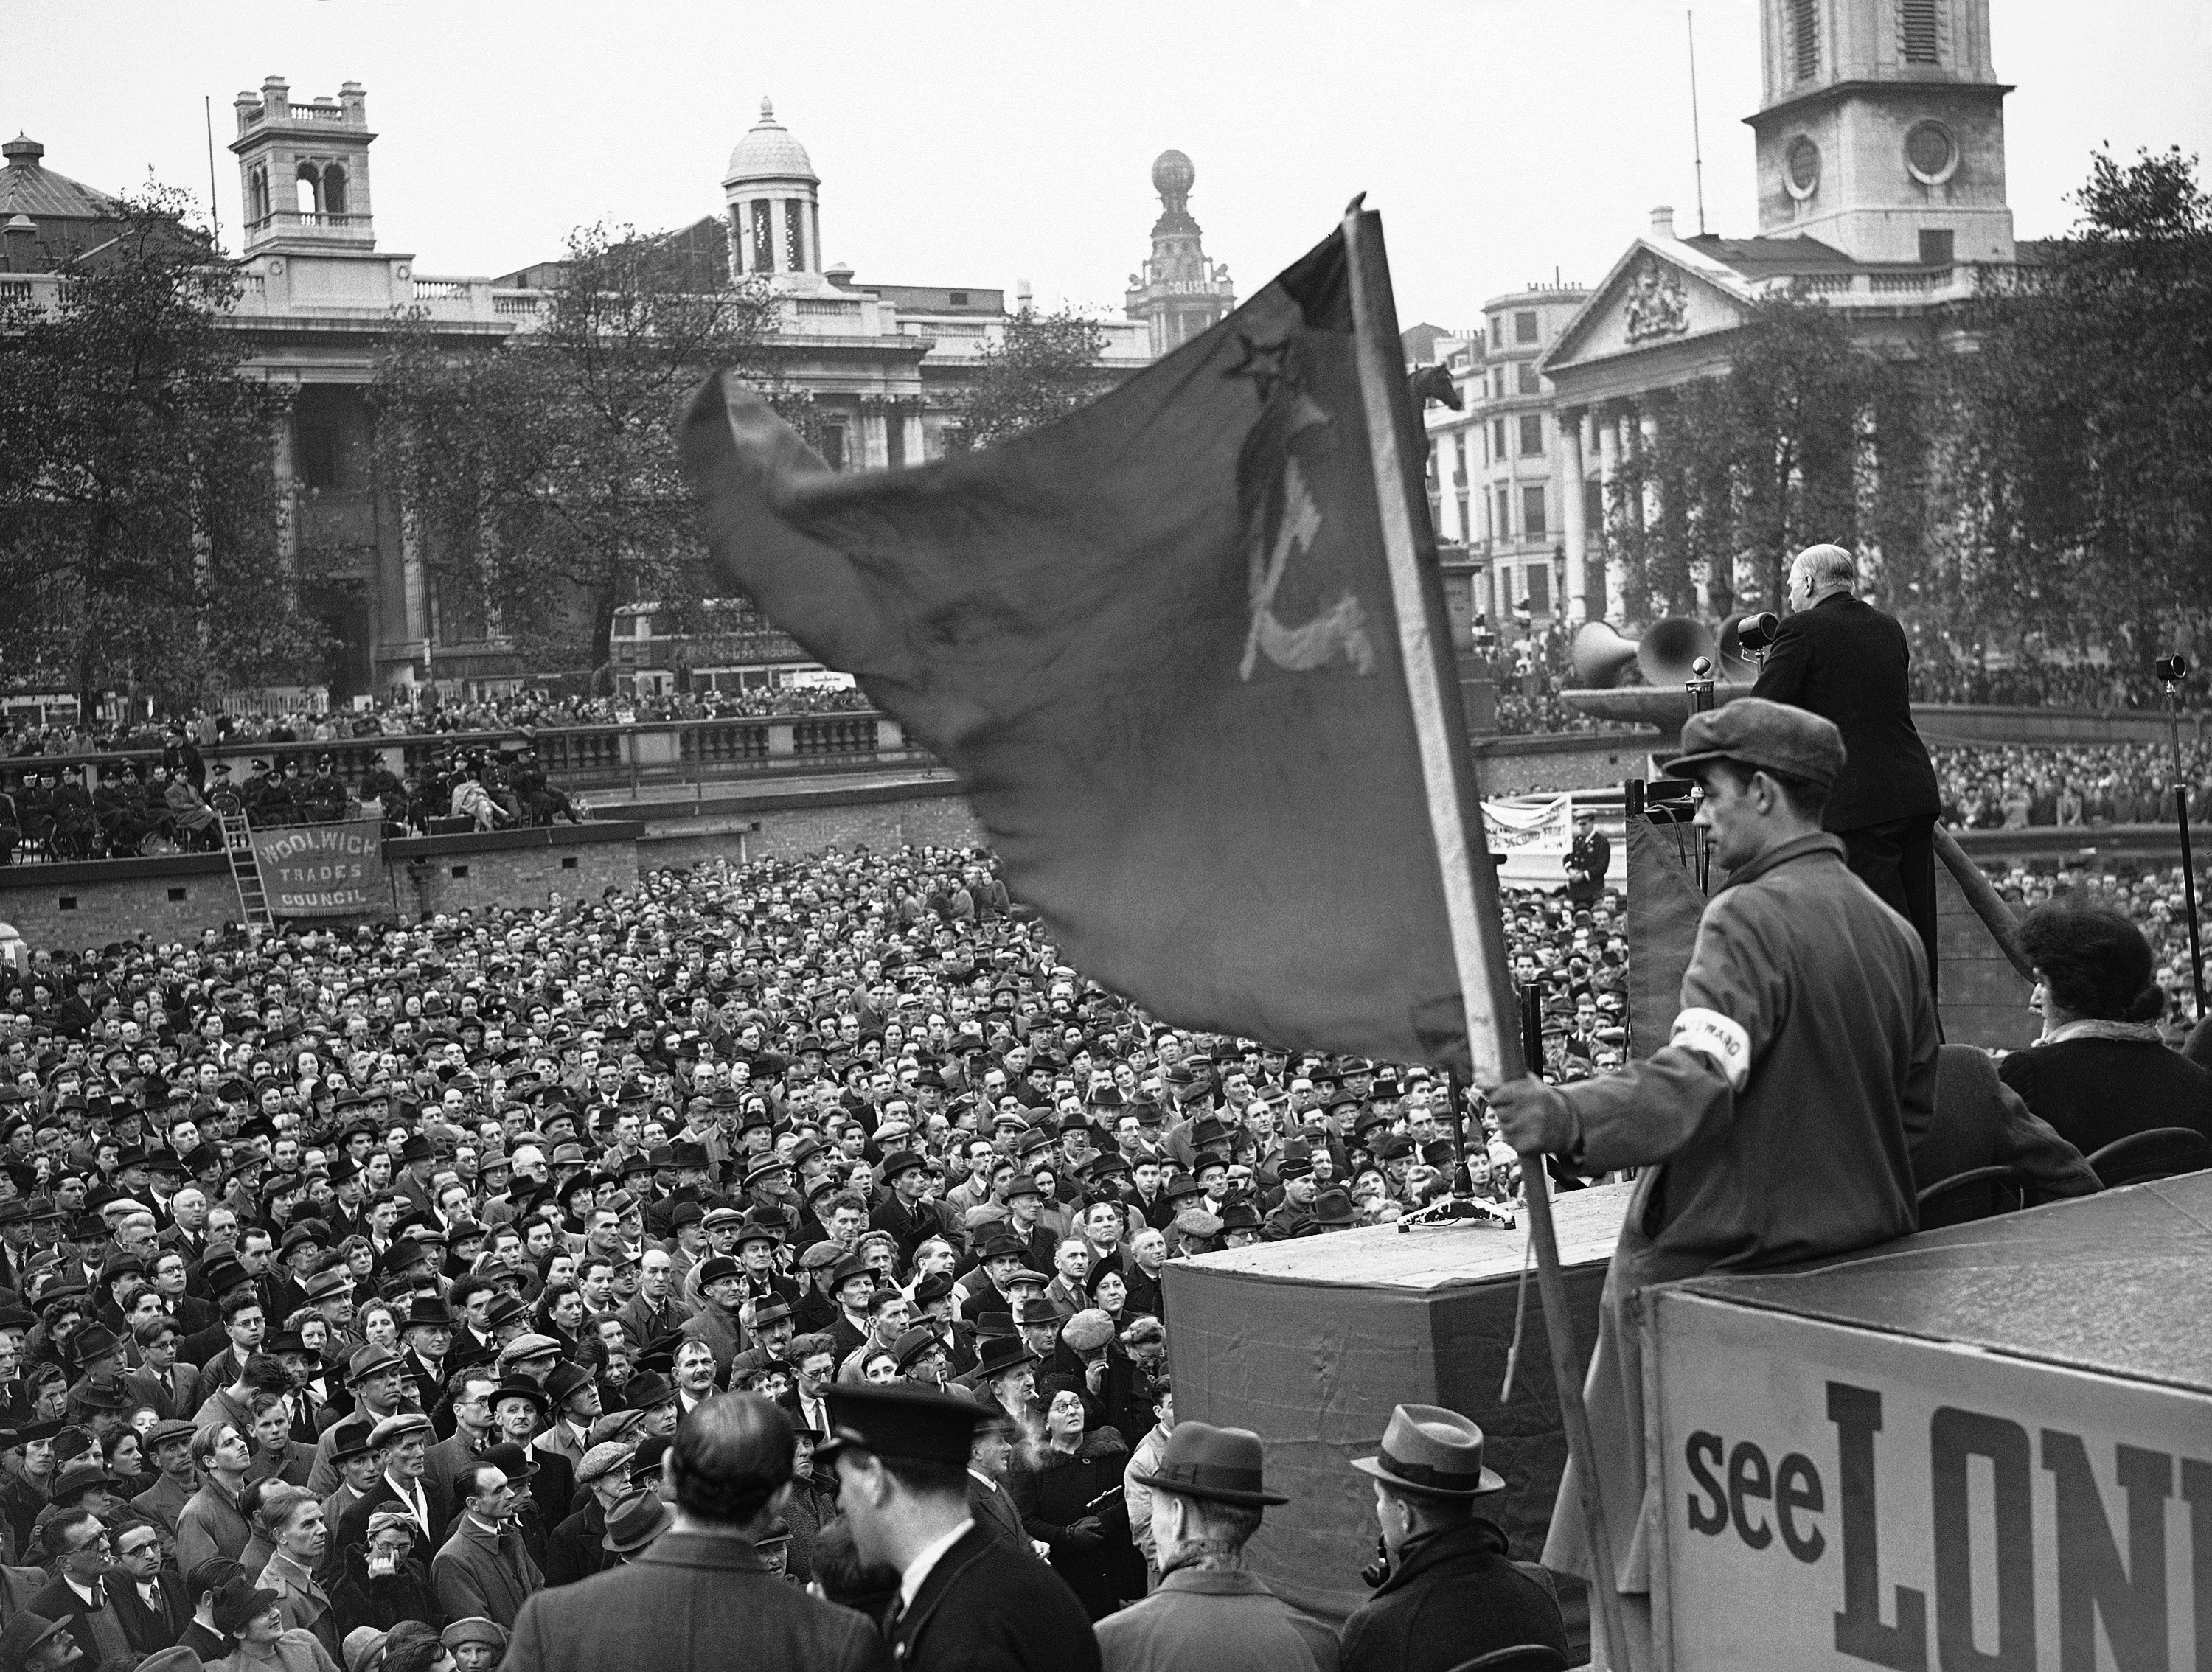 War heroes and factory workers were among those who took part in the rally in Trafalgar square, when the opening of a second front was again demanded. Thousands crowded into the square to hear the speakers who included Fred Cotton, 24 year old ex-soldier who lost both legs at Dunkirk and is now working 10 hours a day in a munition factory. A view of a section of the huge crowd with the Russian flag flying in the foreground on Oct. 25, 1942.